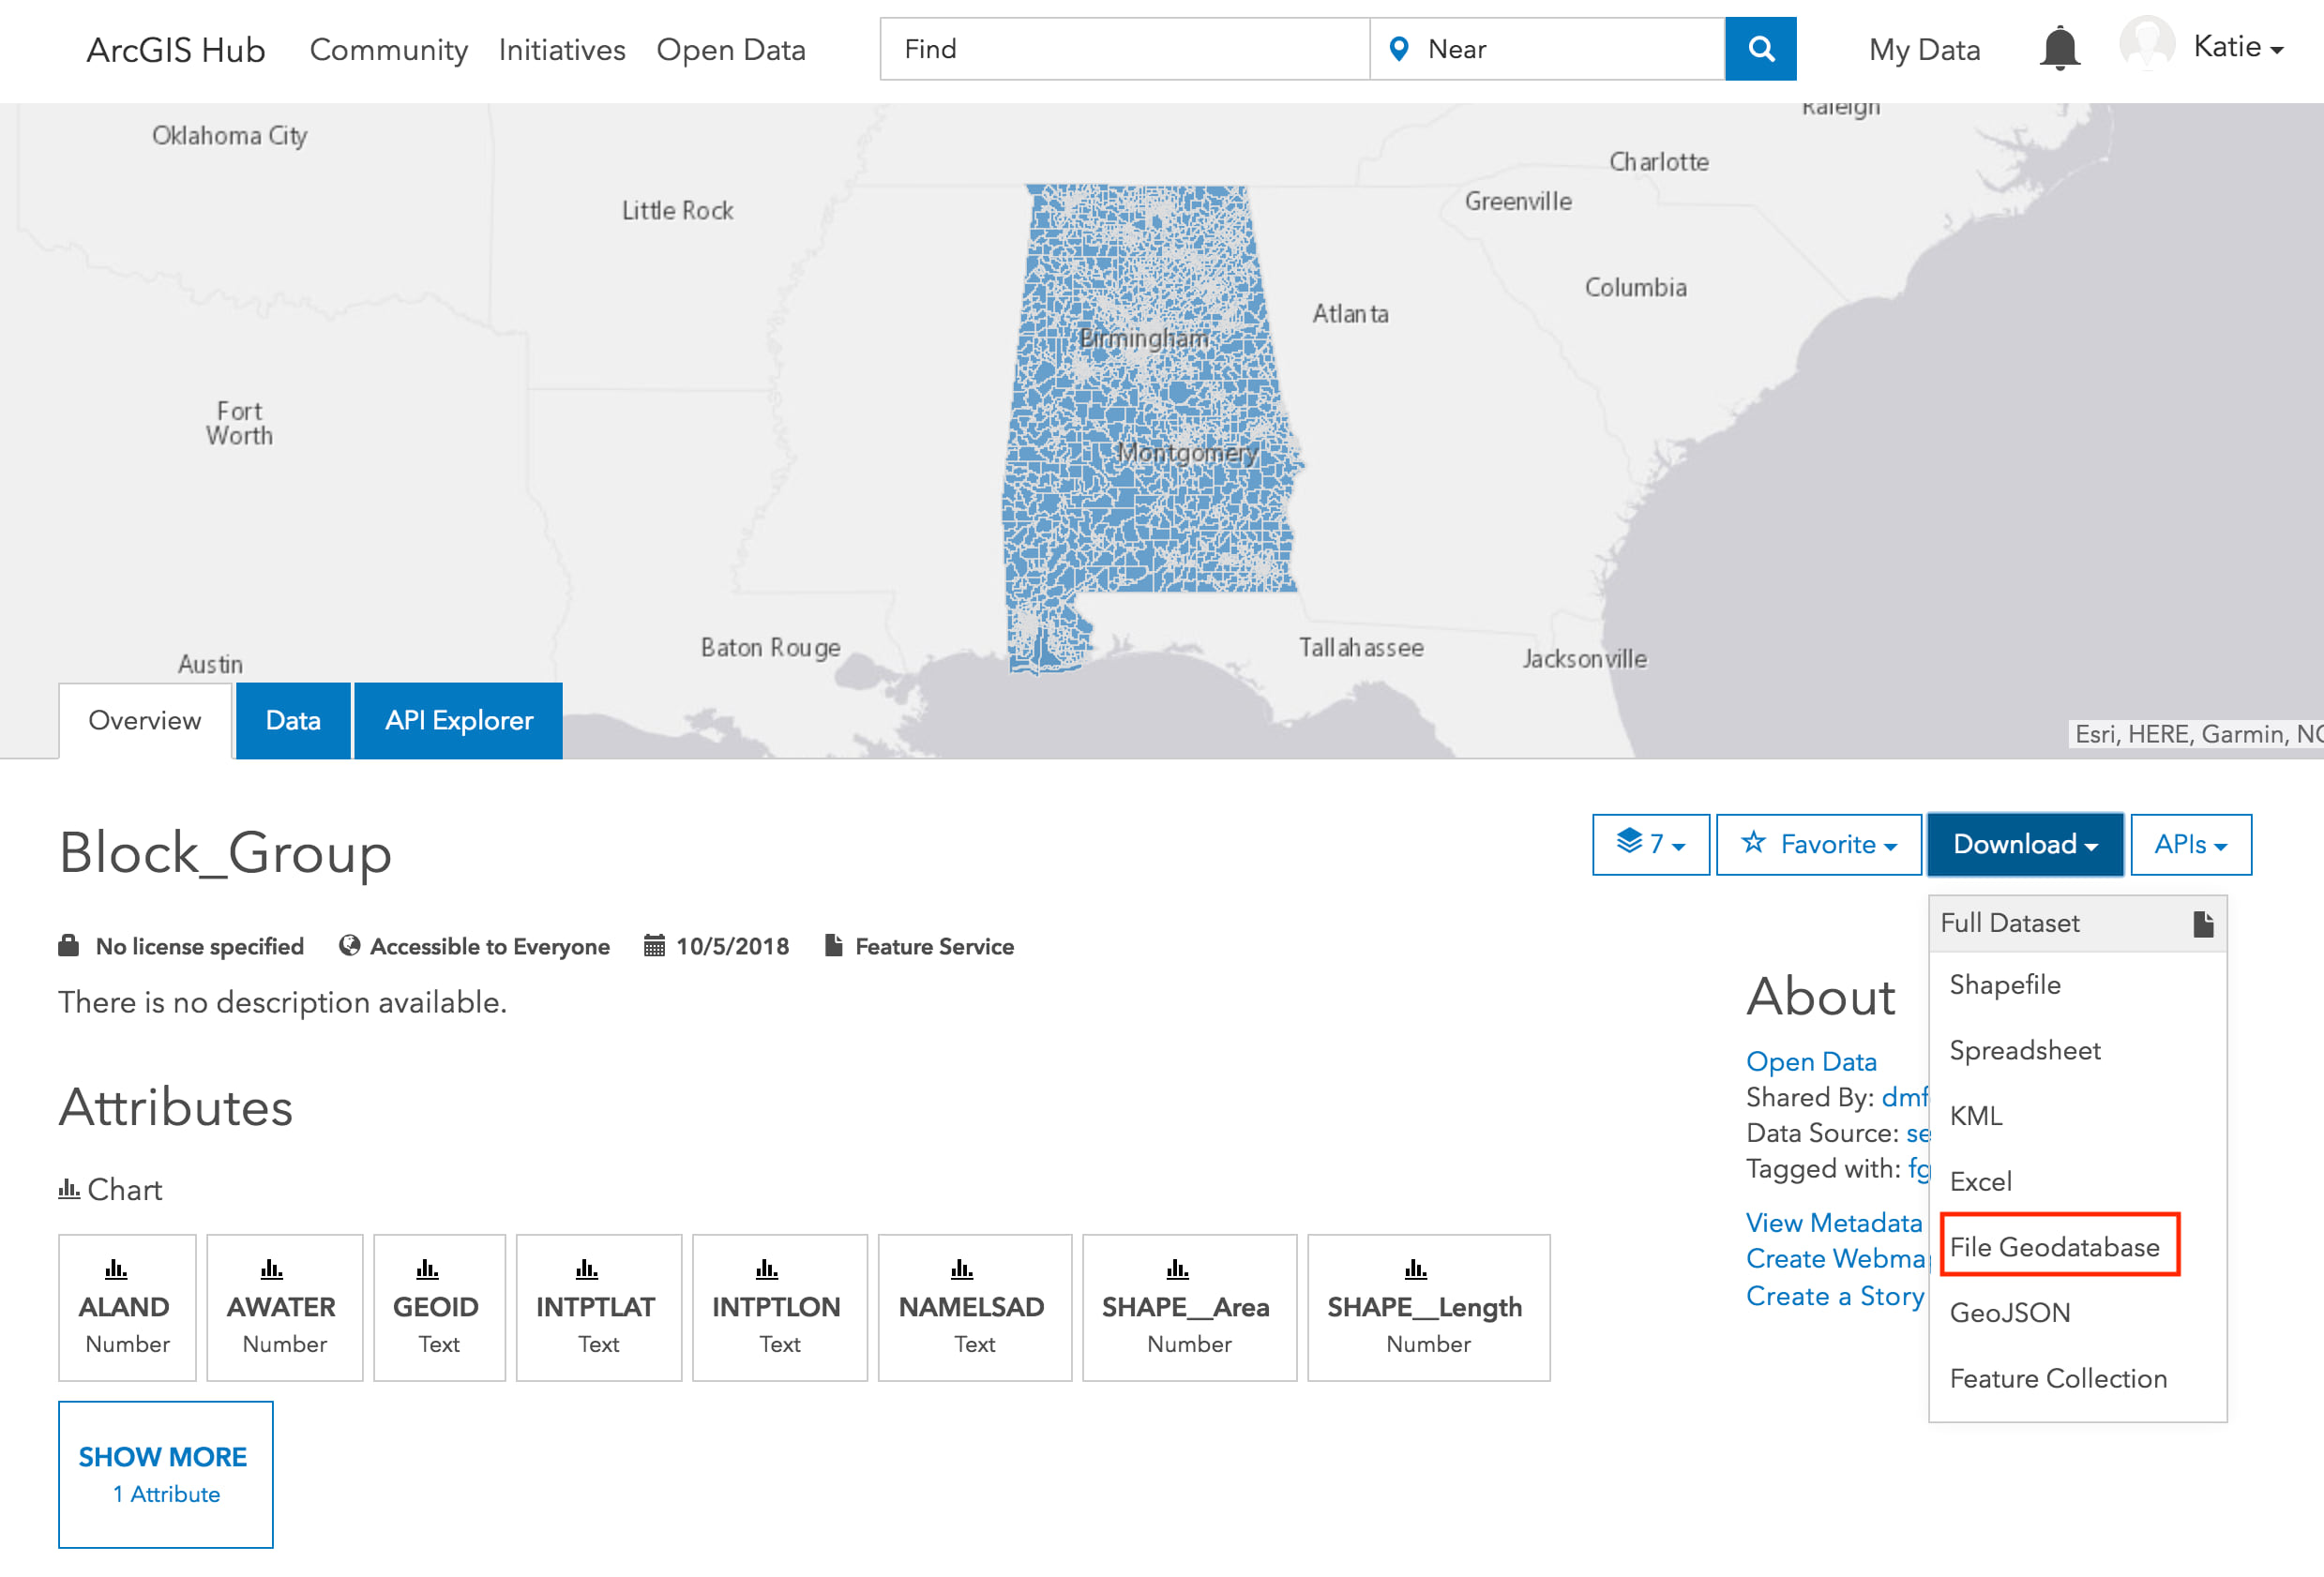 Share File Geodatabases for Download on your ArcGIS Hub sites